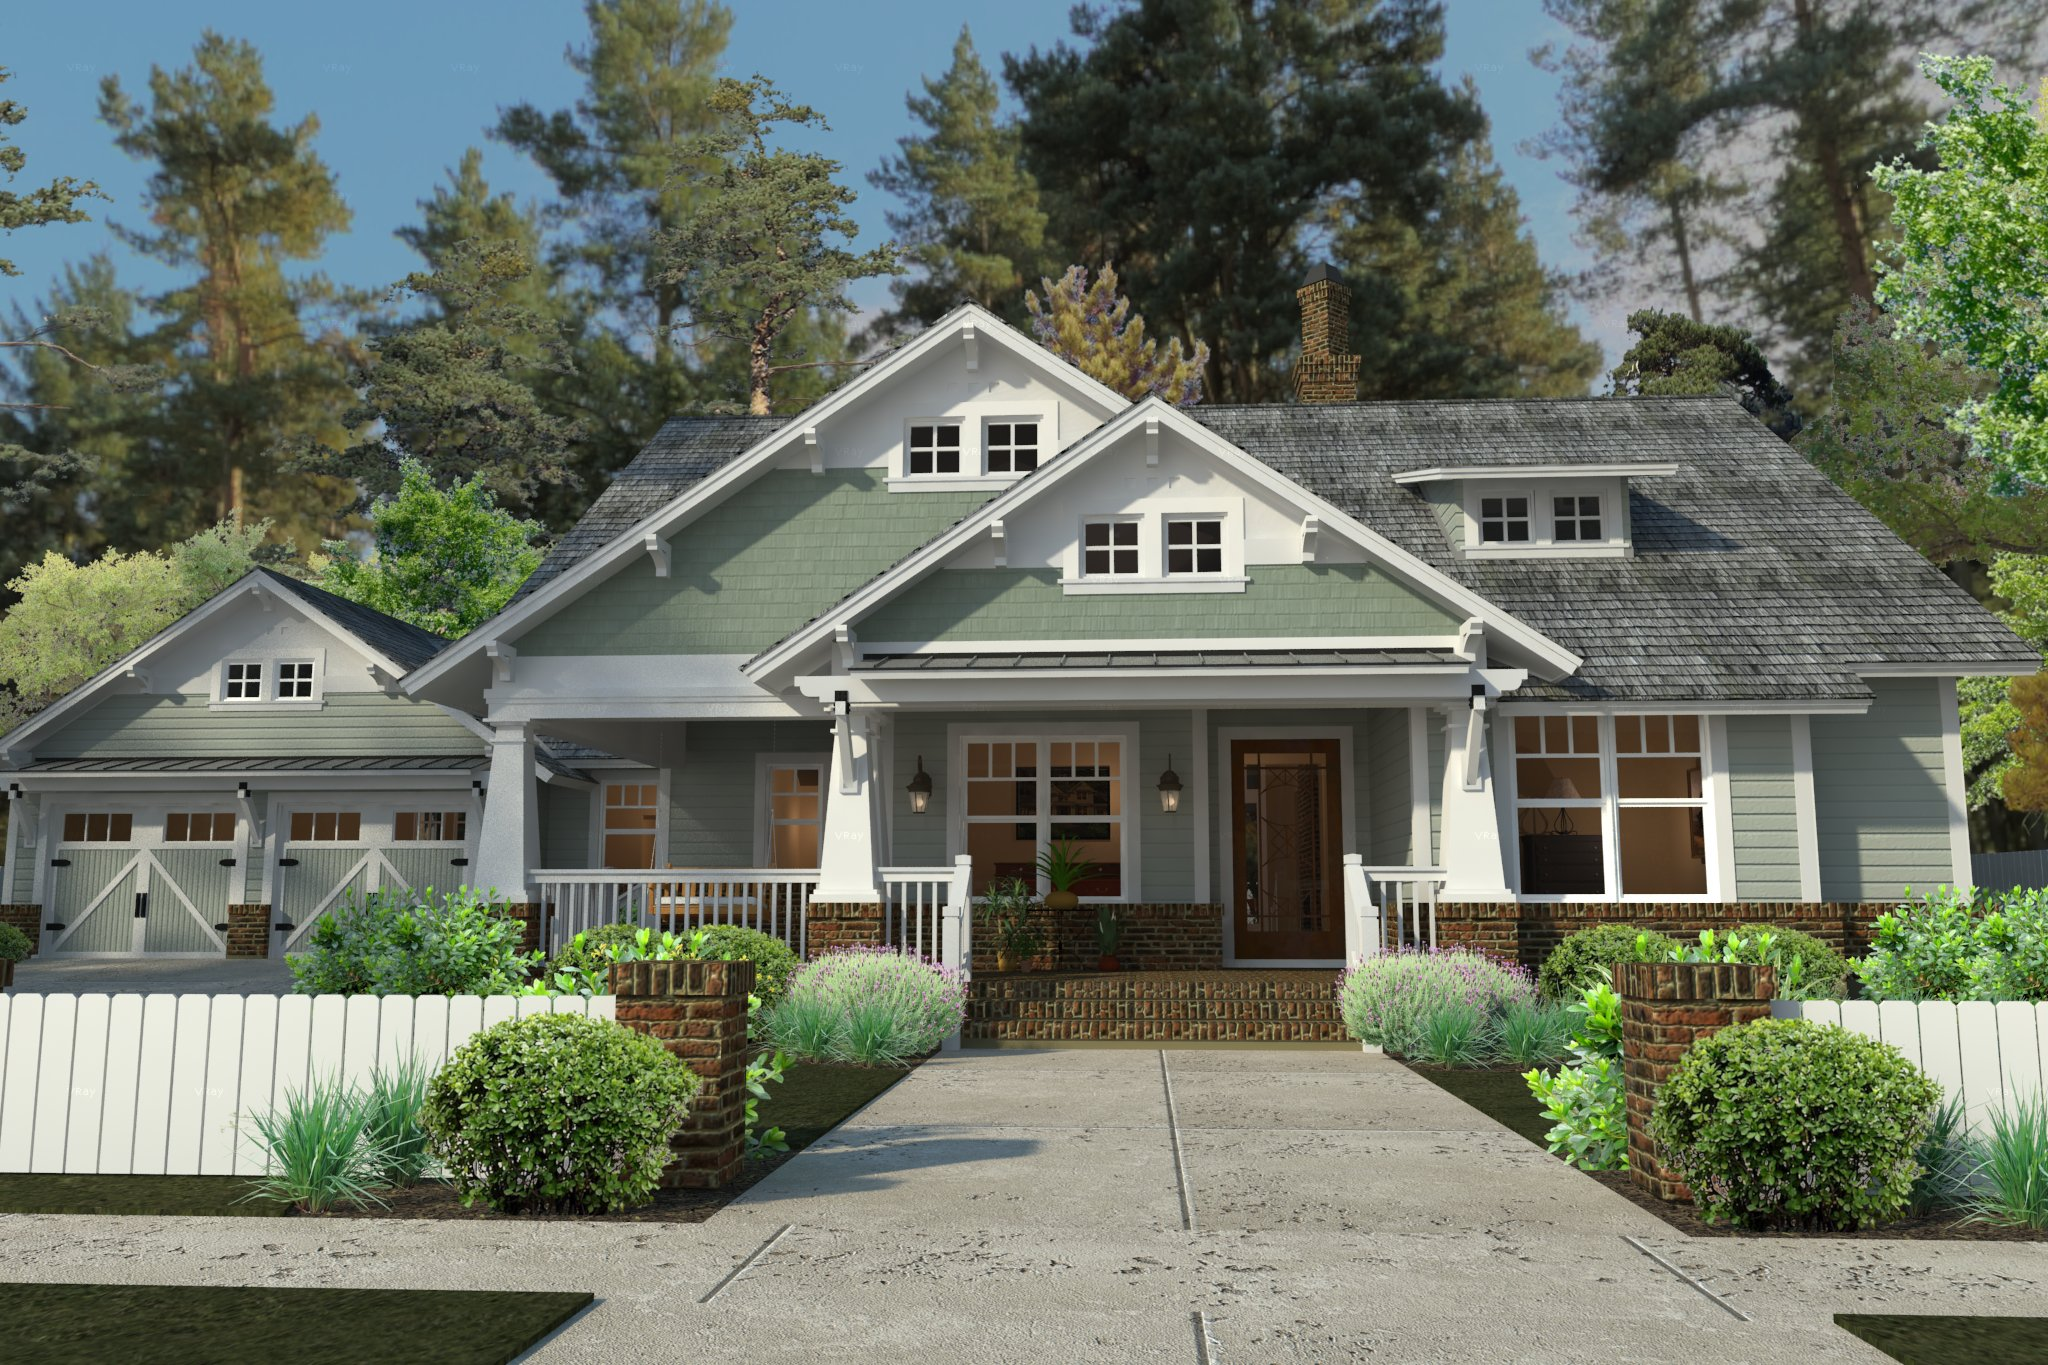 5 tips for achieving great curb appeal the house designers for 3 story craftsman house plans